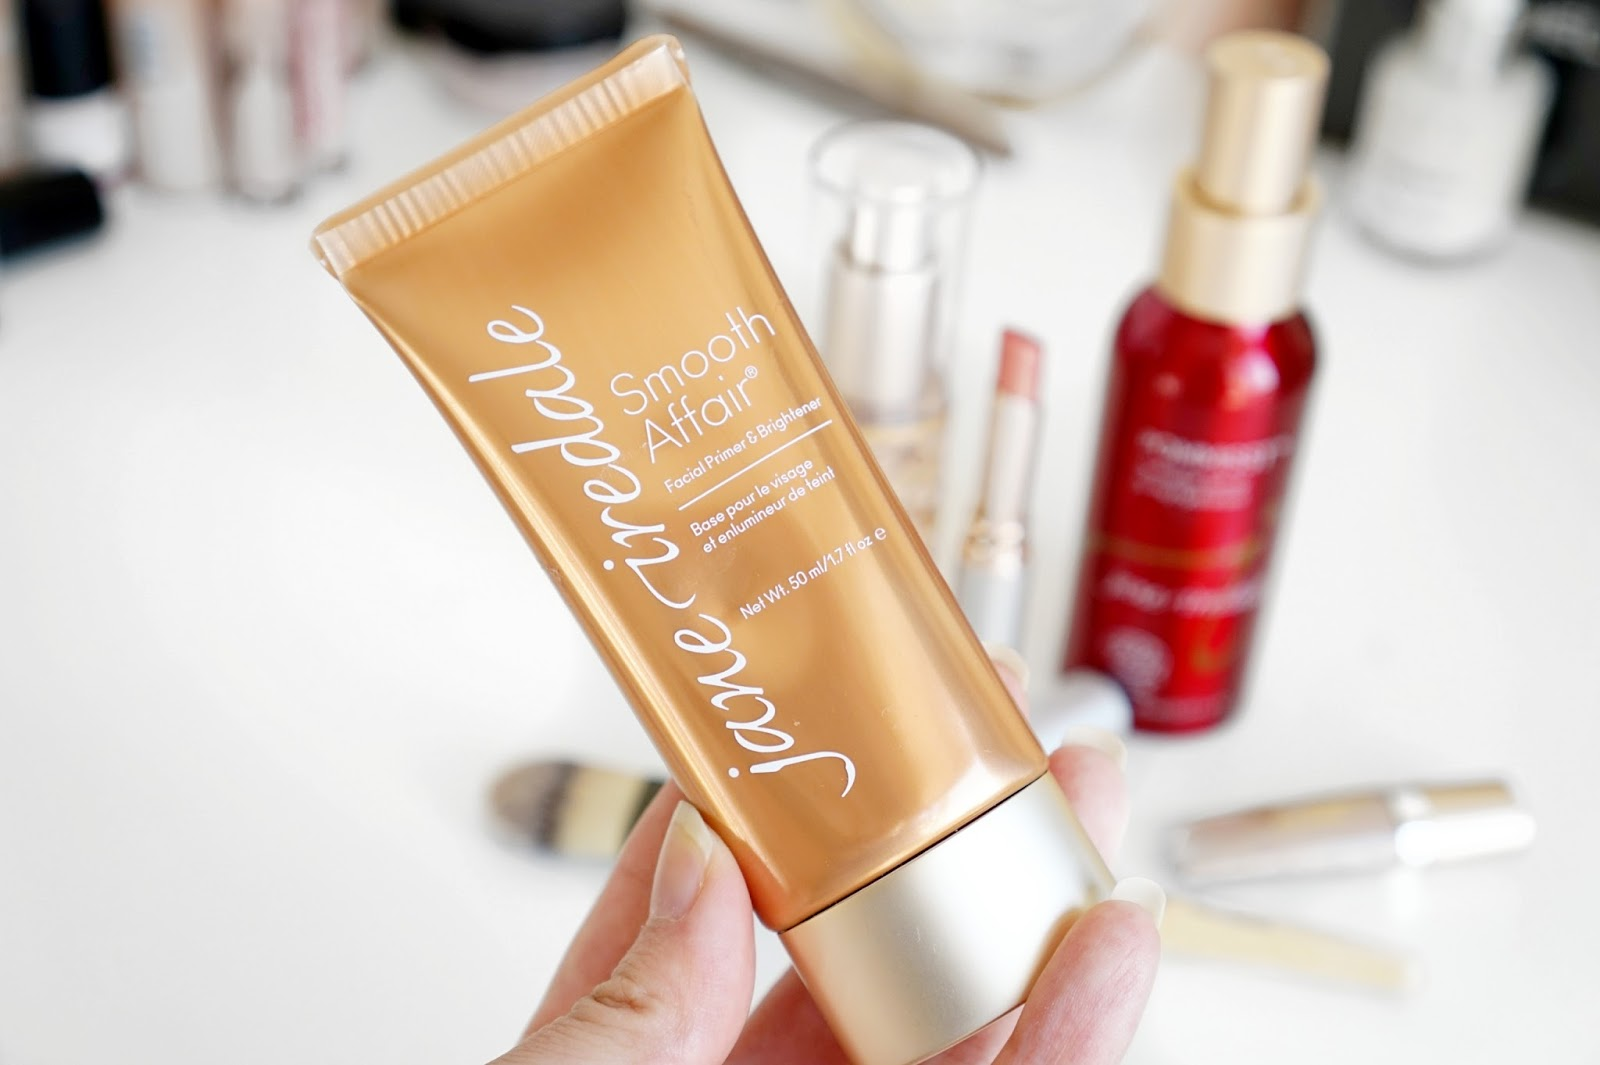 Jane_Iredale_Smooth_Affair_Facial_Primer_And_Brightener